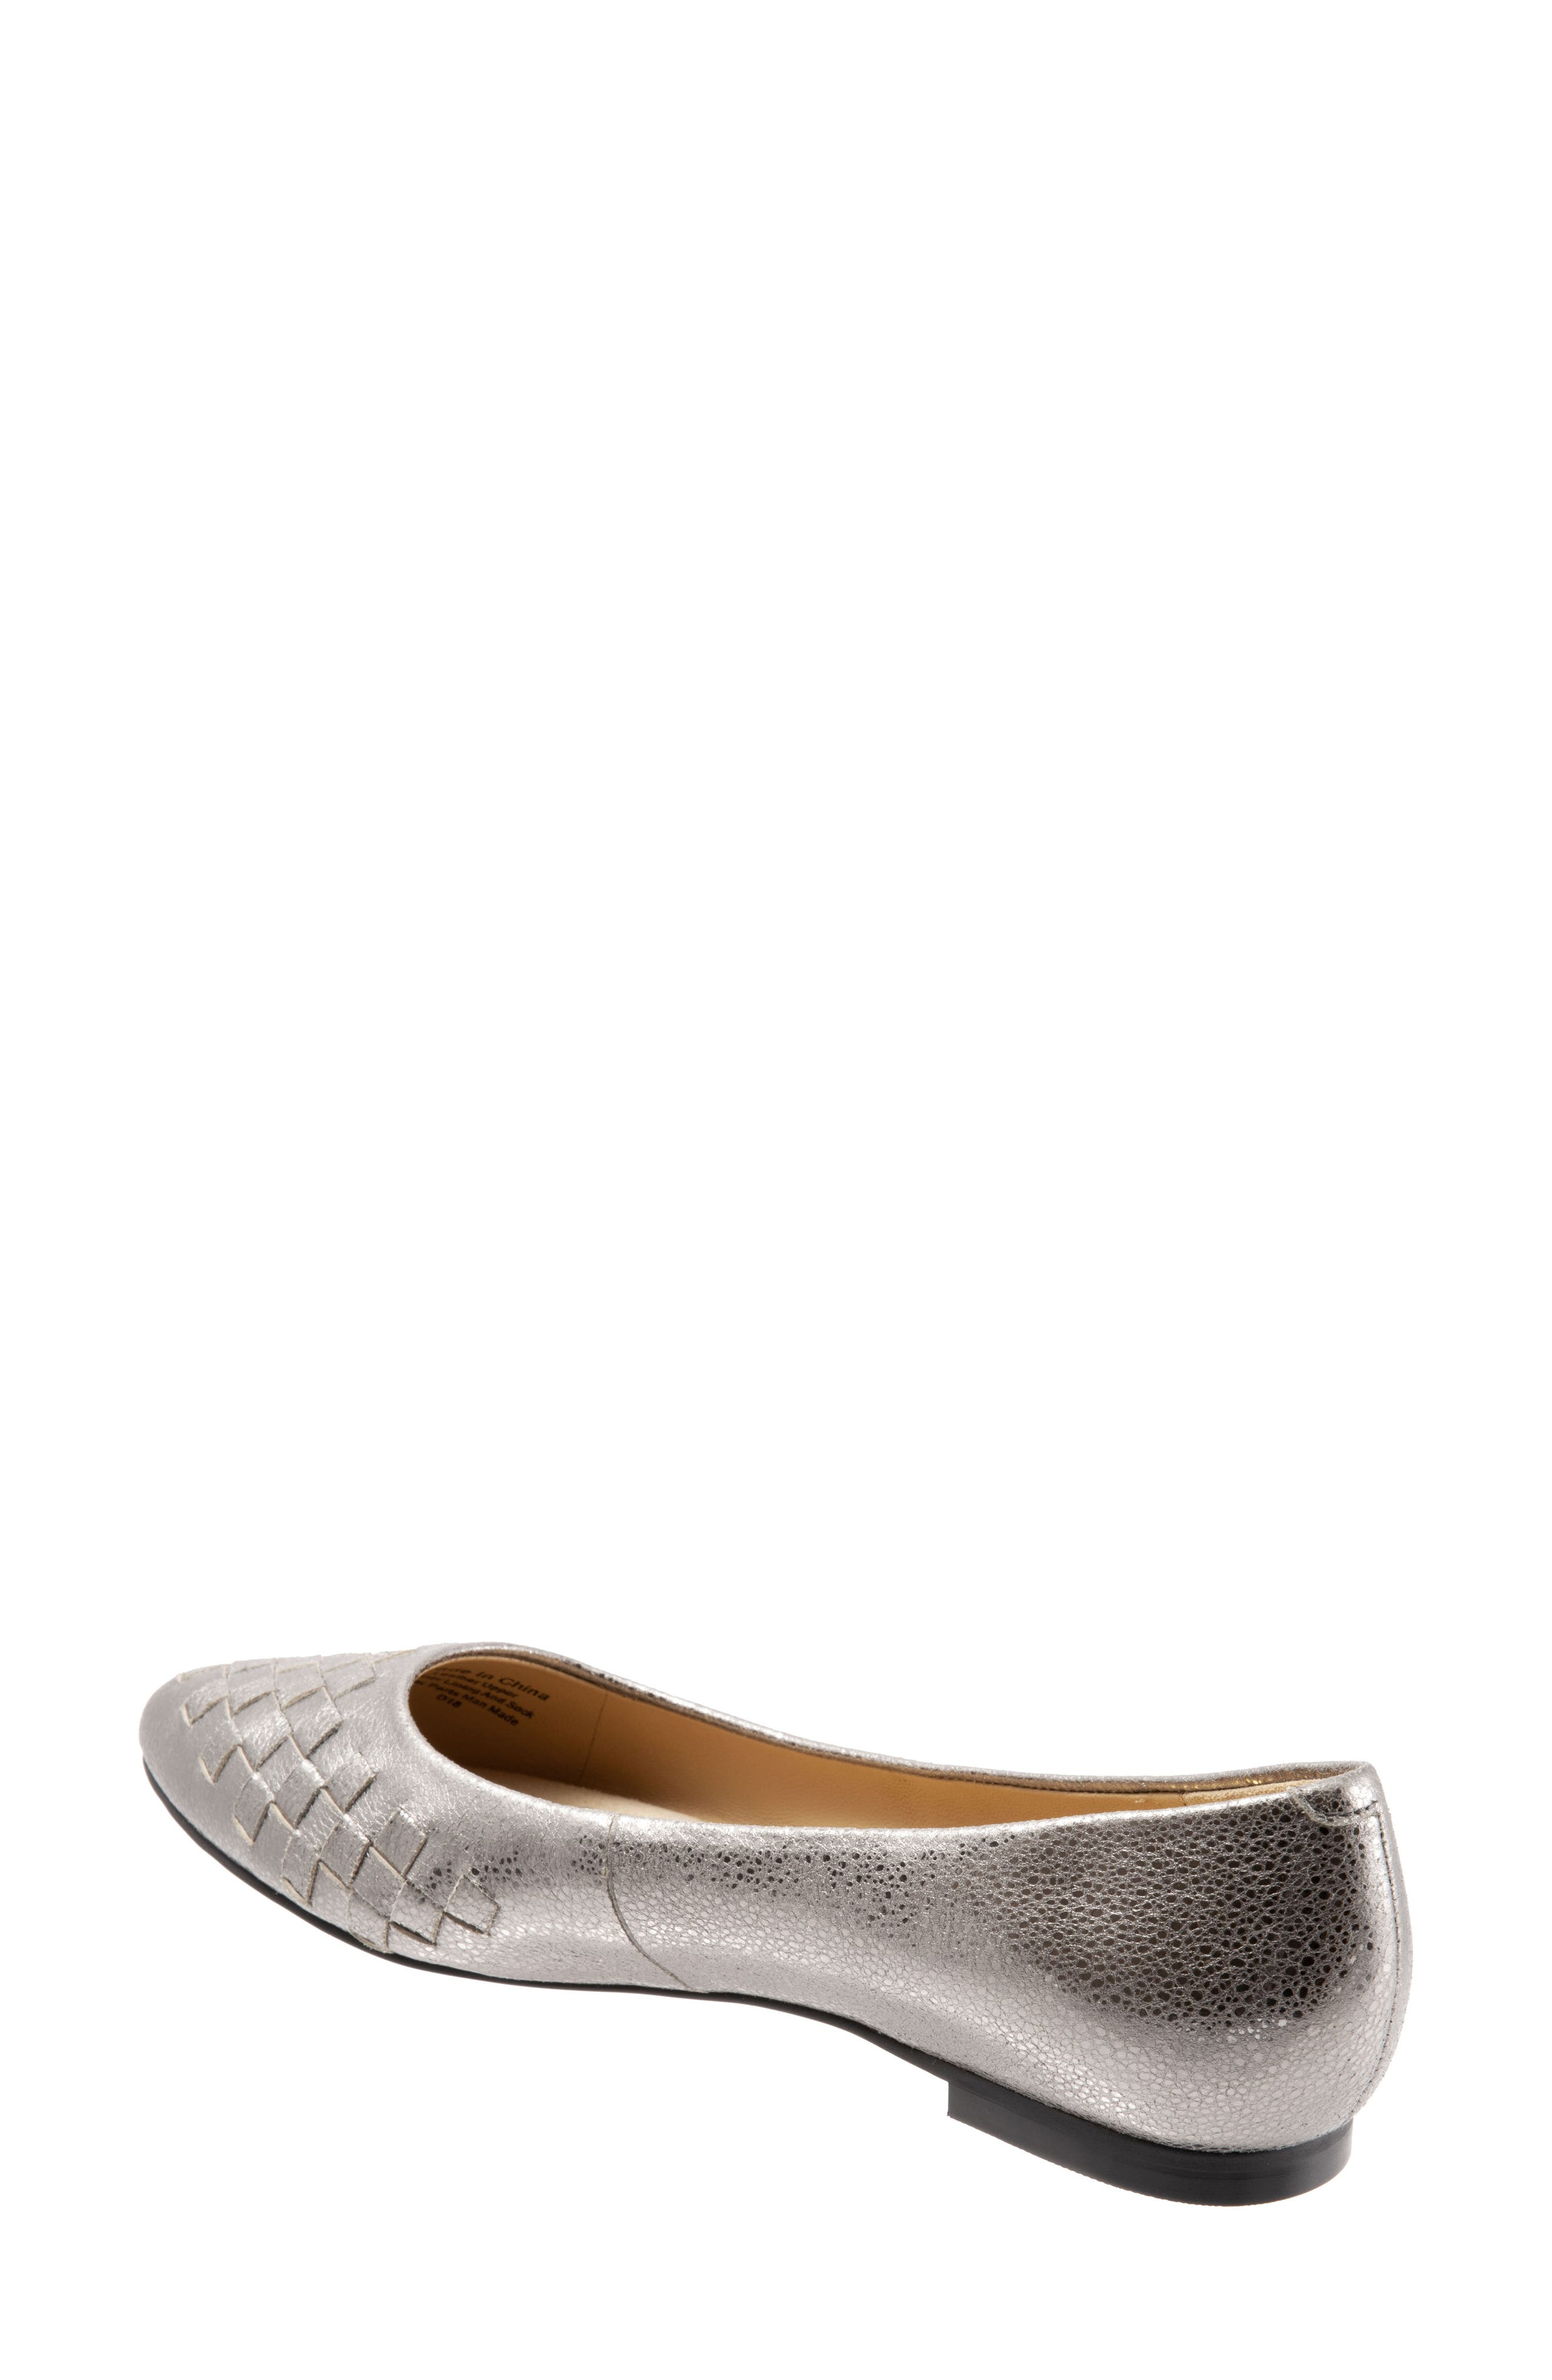 Estee Pointed Toe Flat,                             Alternate thumbnail 2, color,                             SILVER LEATHER